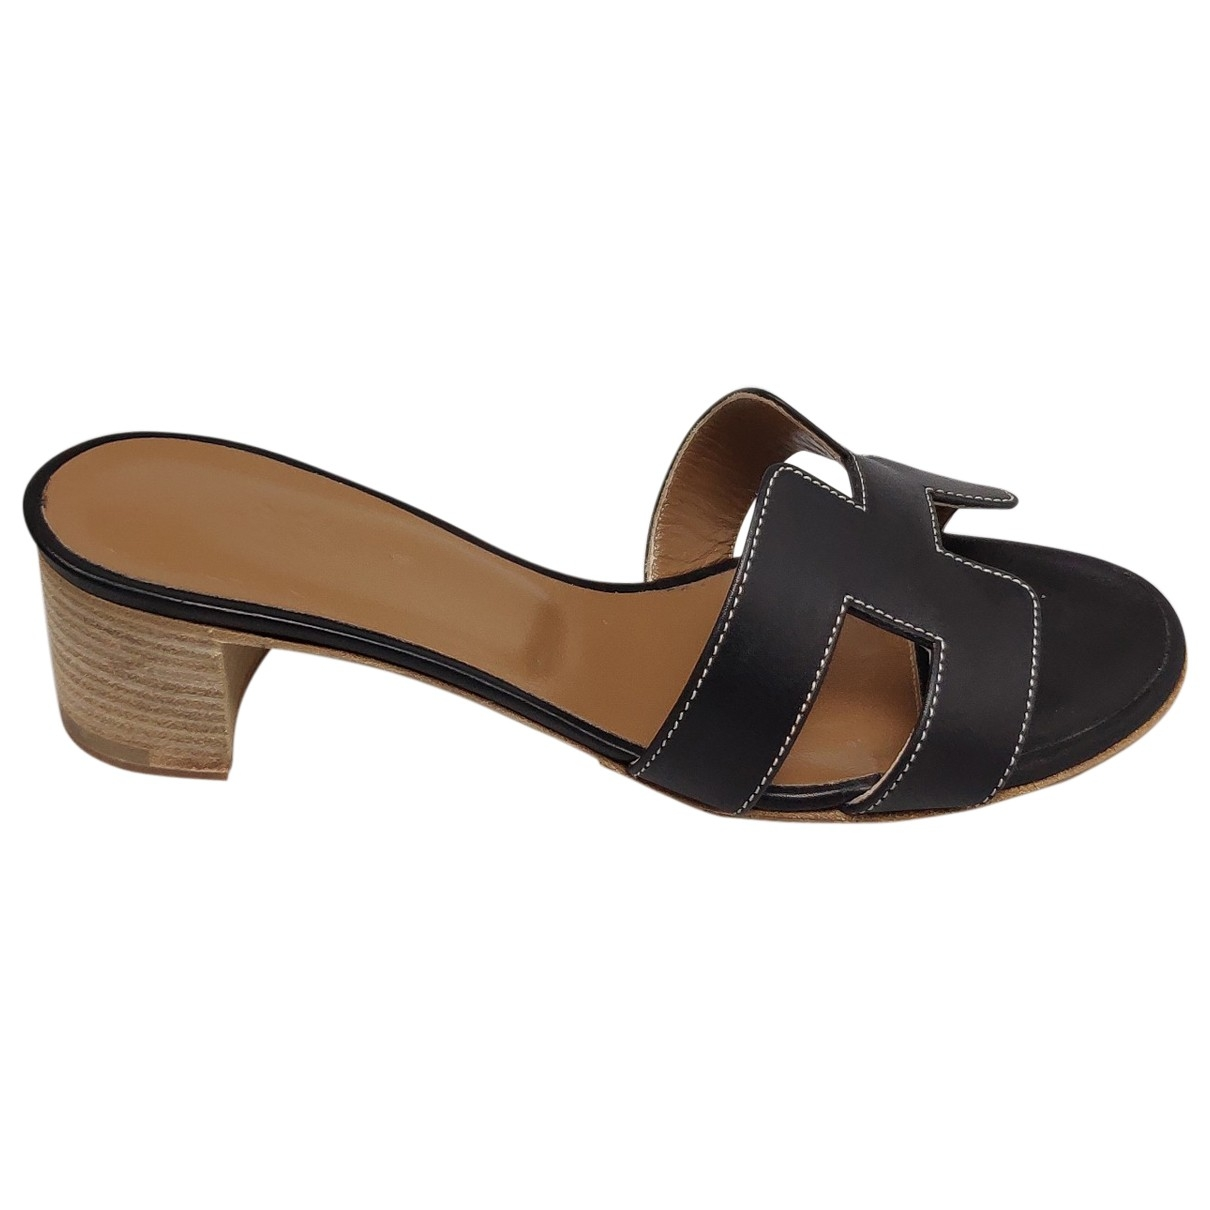 Hermès \N Black Leather Sandals for Women 37.5 EU